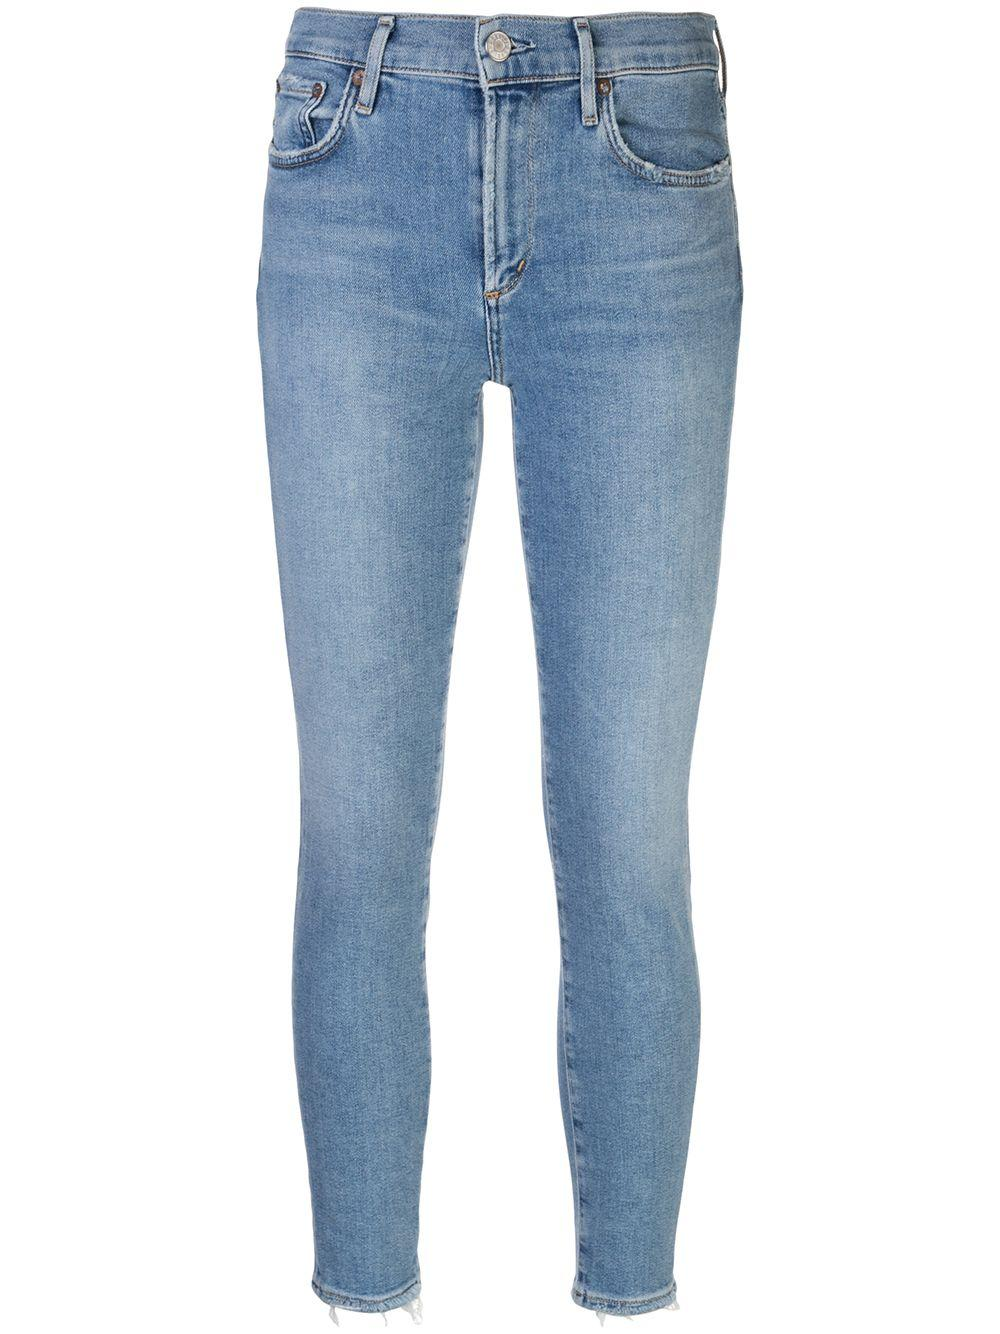 Sophie Mid Rise Skinny Jean Item # A123E-1156